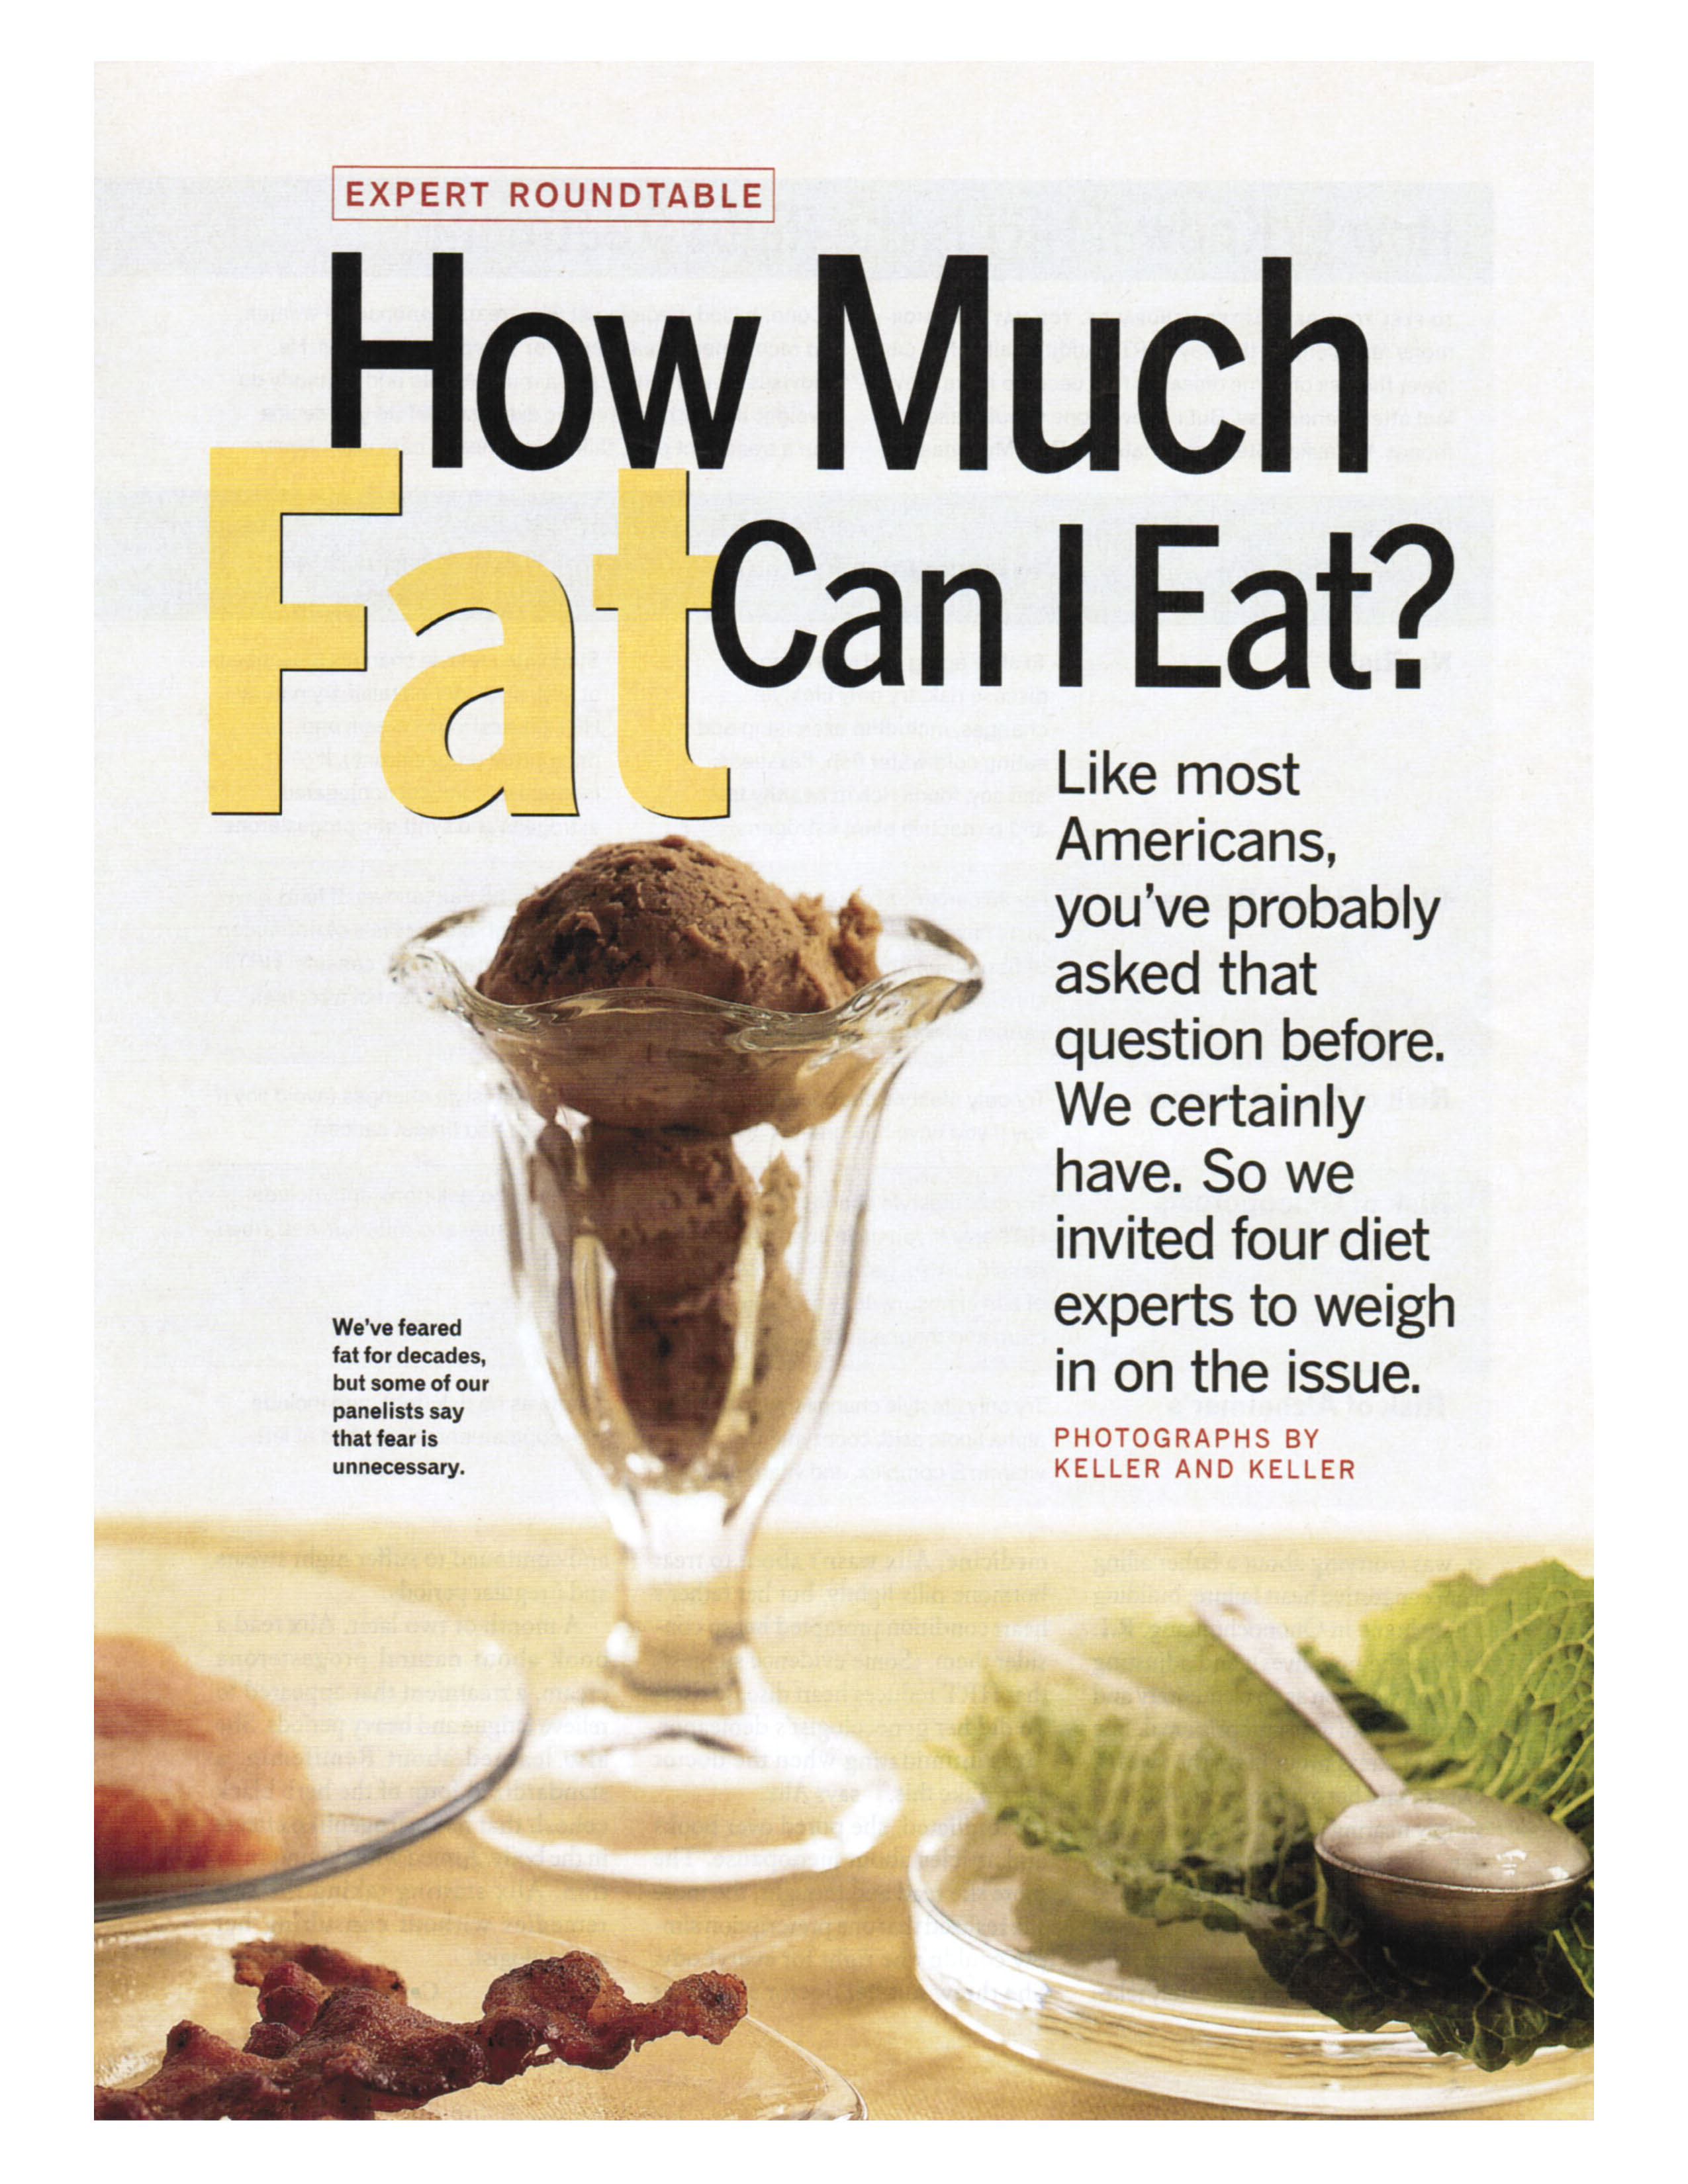 How Much Fat Can I Eat?